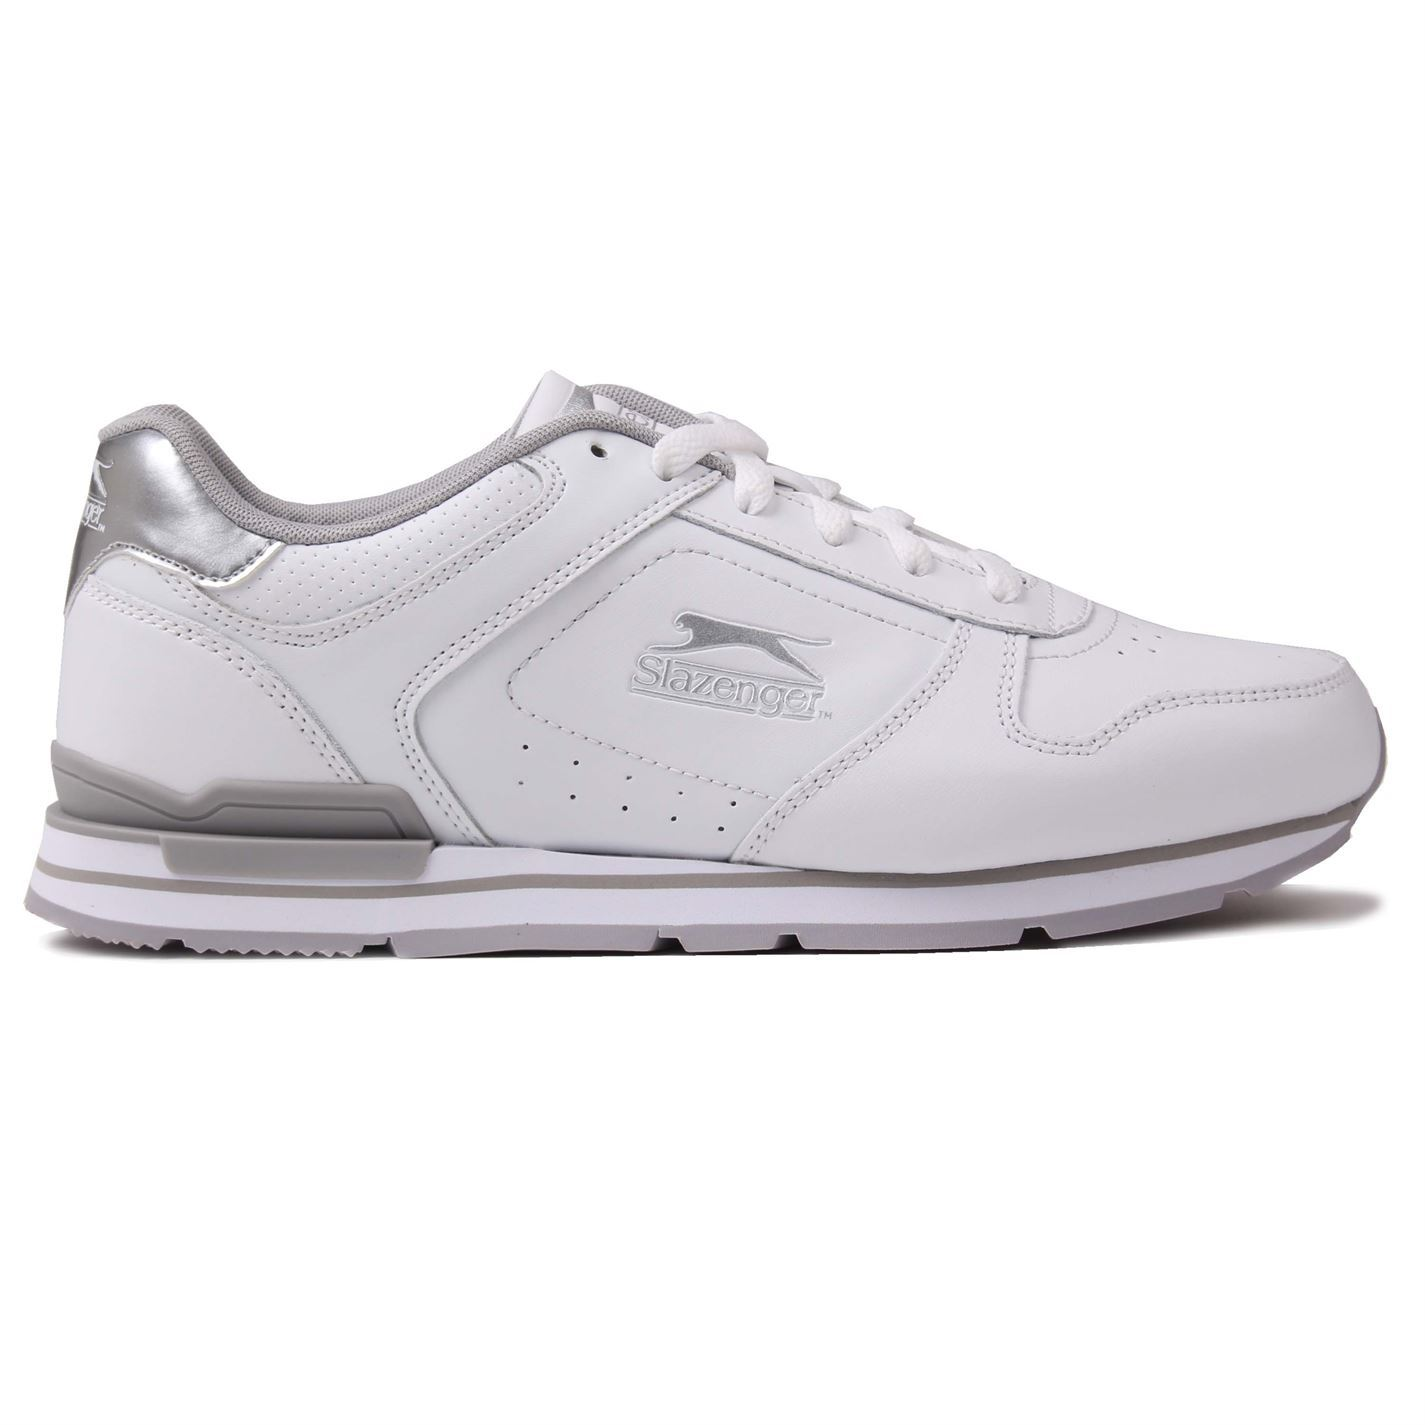 3086f343ba ... Slazenger Classic Trainers Womens White/Silver Sports Trainers Sneakers  ...